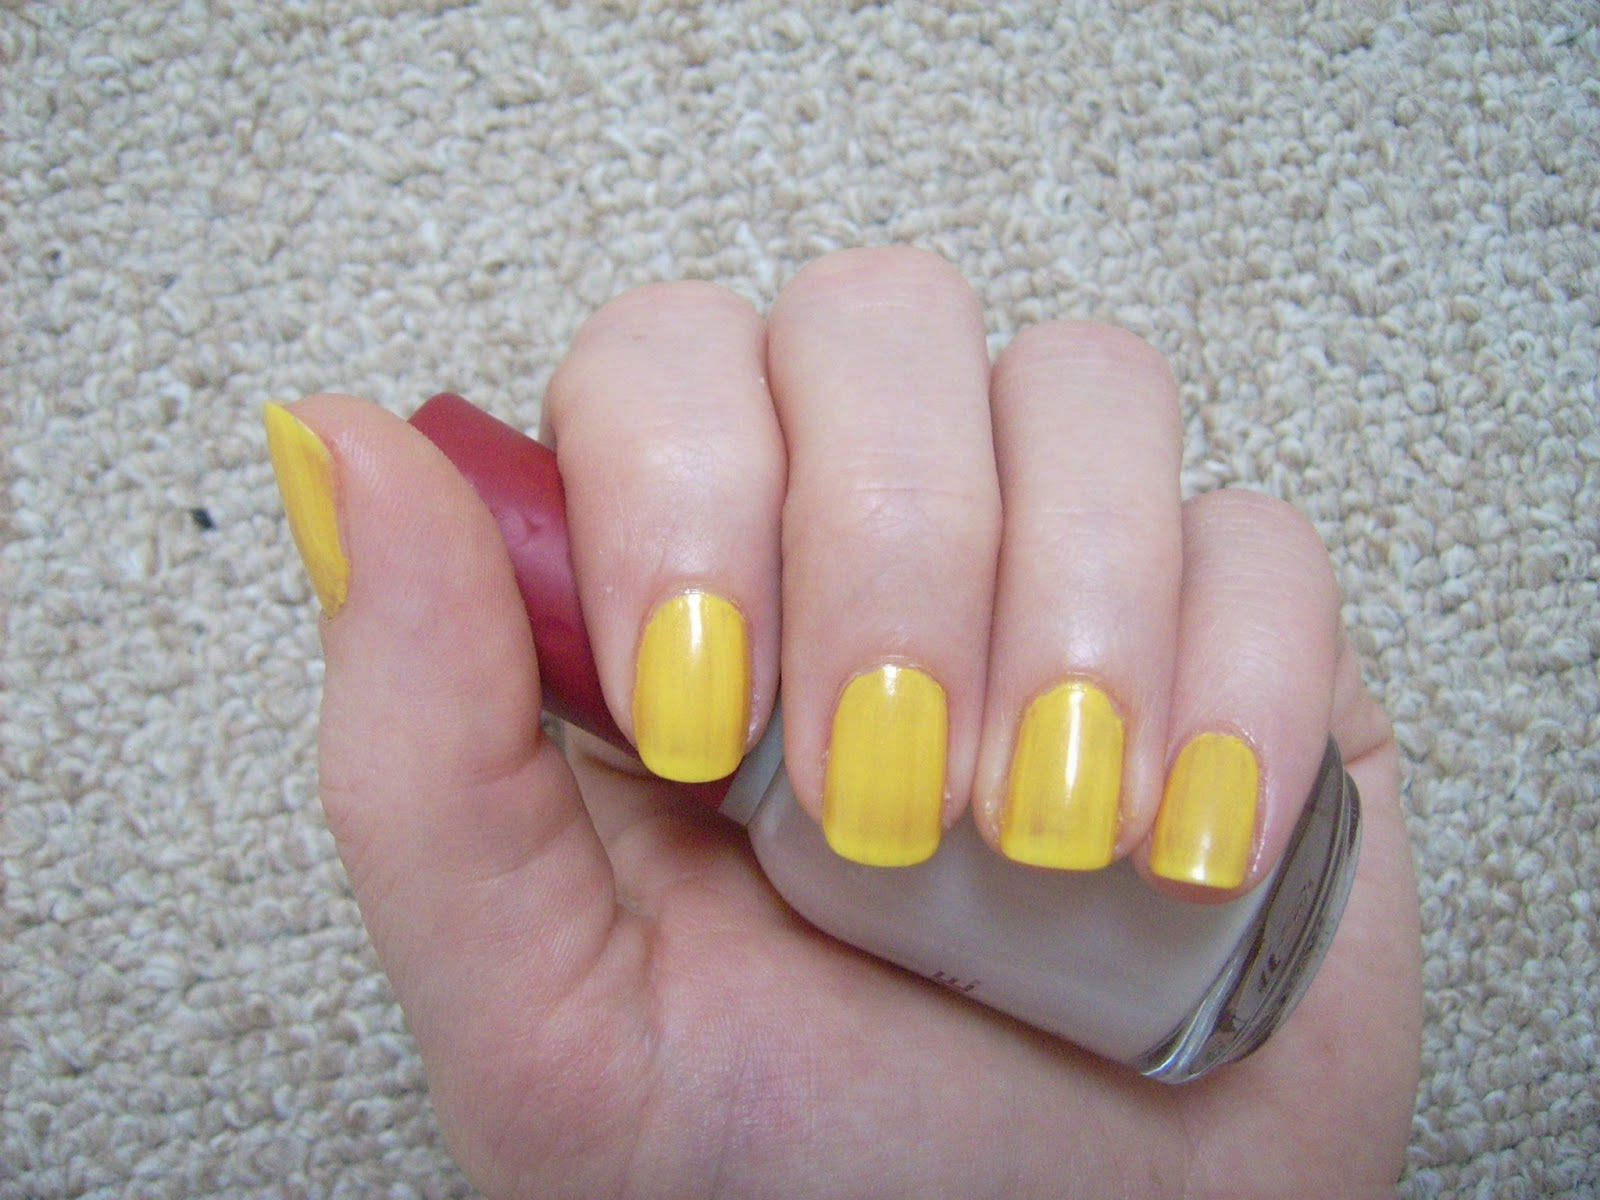 Miss Sporty QuickDry 301 nail polish